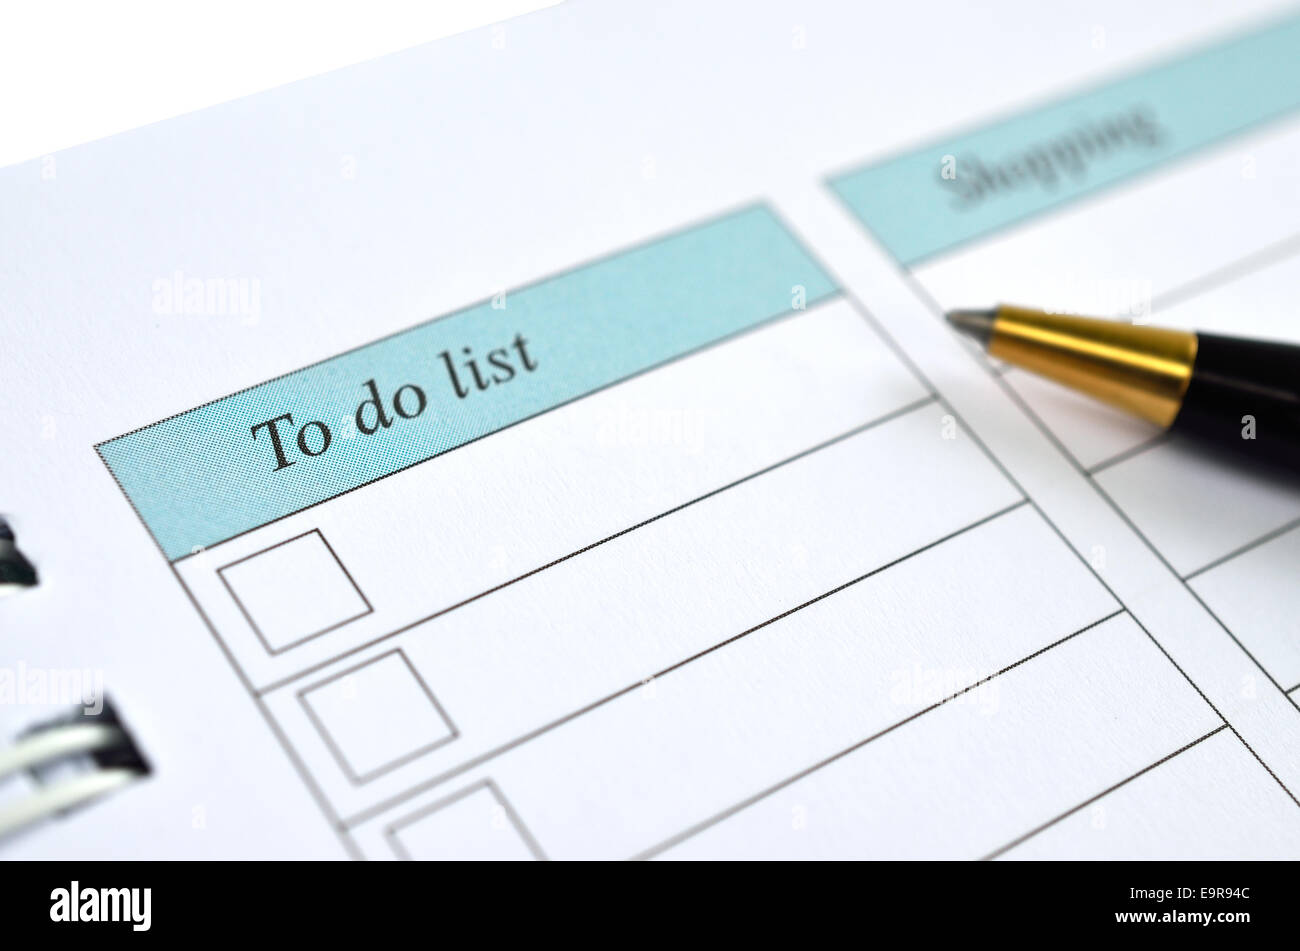 to do list on a notebook representing things to do when organizing a